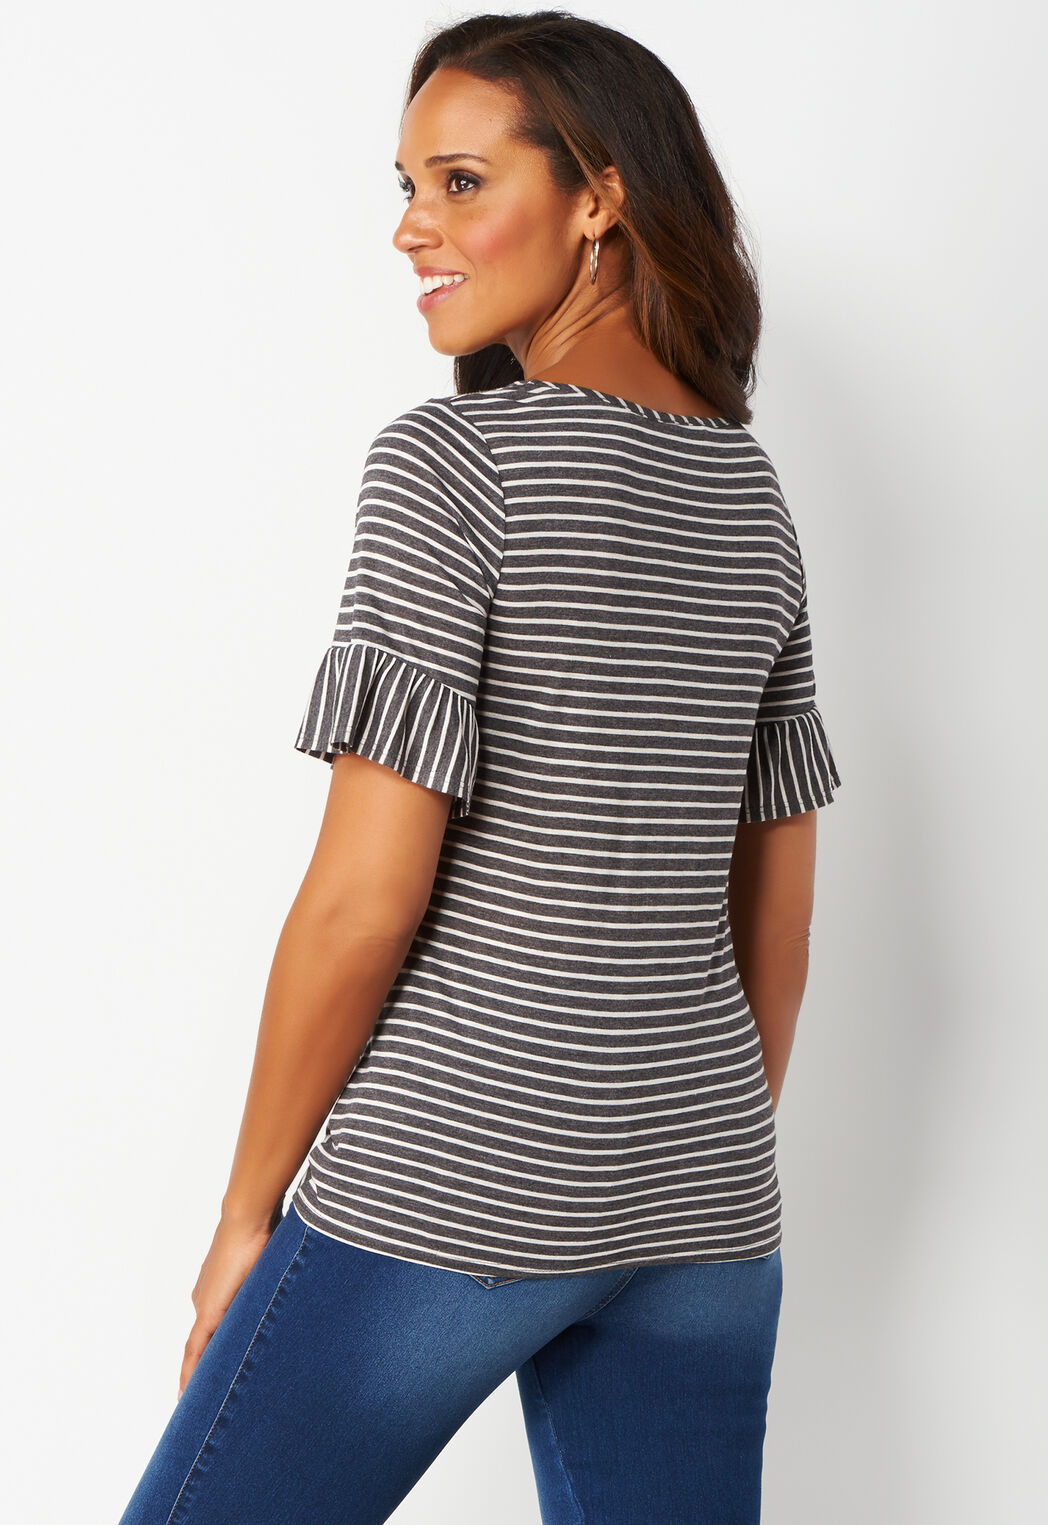 25829bac55a ... Tie Front Stripe Plus Size Top. Previous. add to wish list · add to wish  list